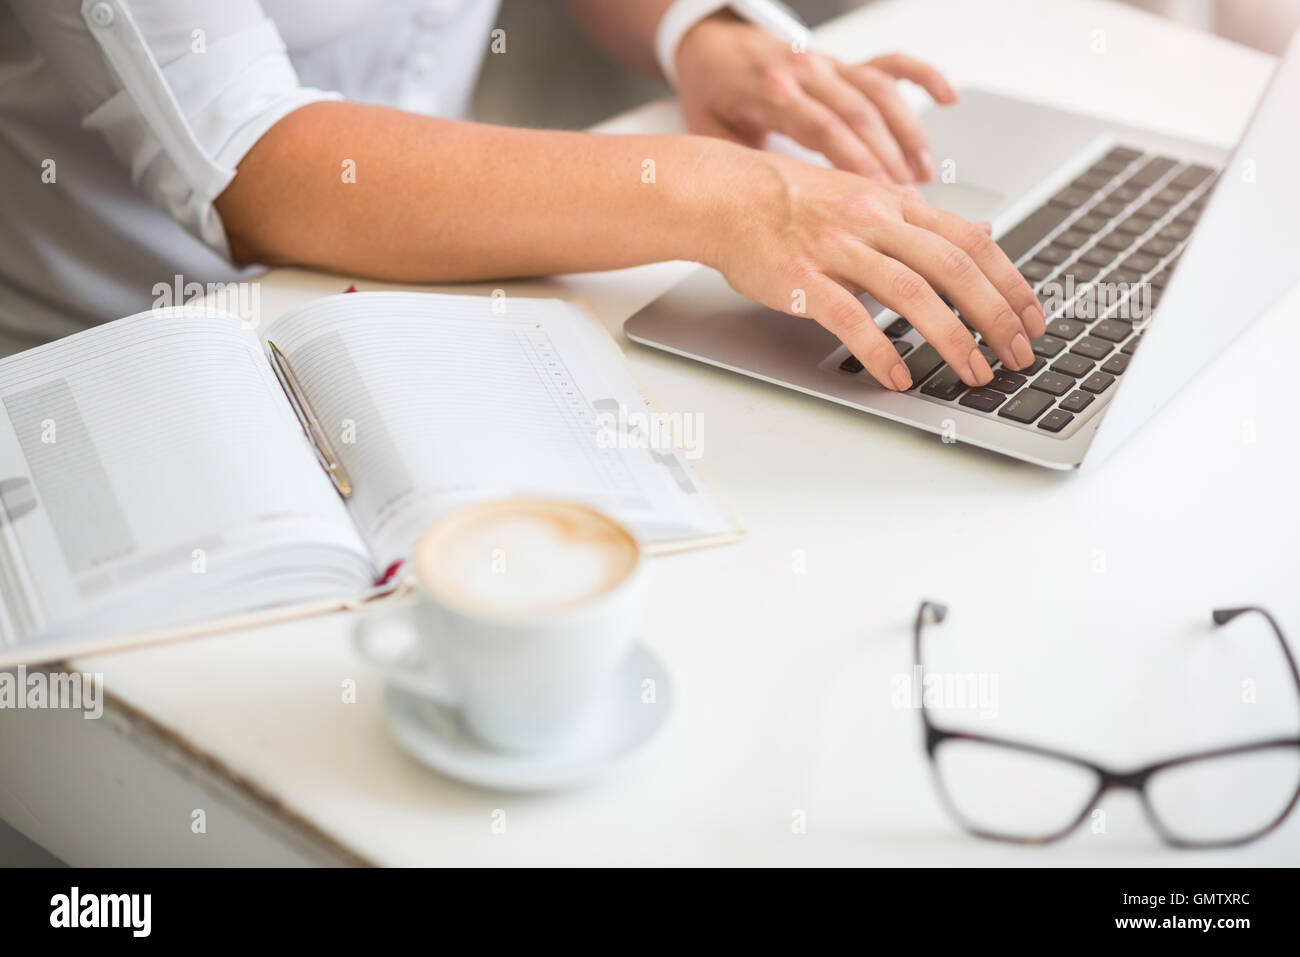 Pleasant woman working on the laptop - Stock Image